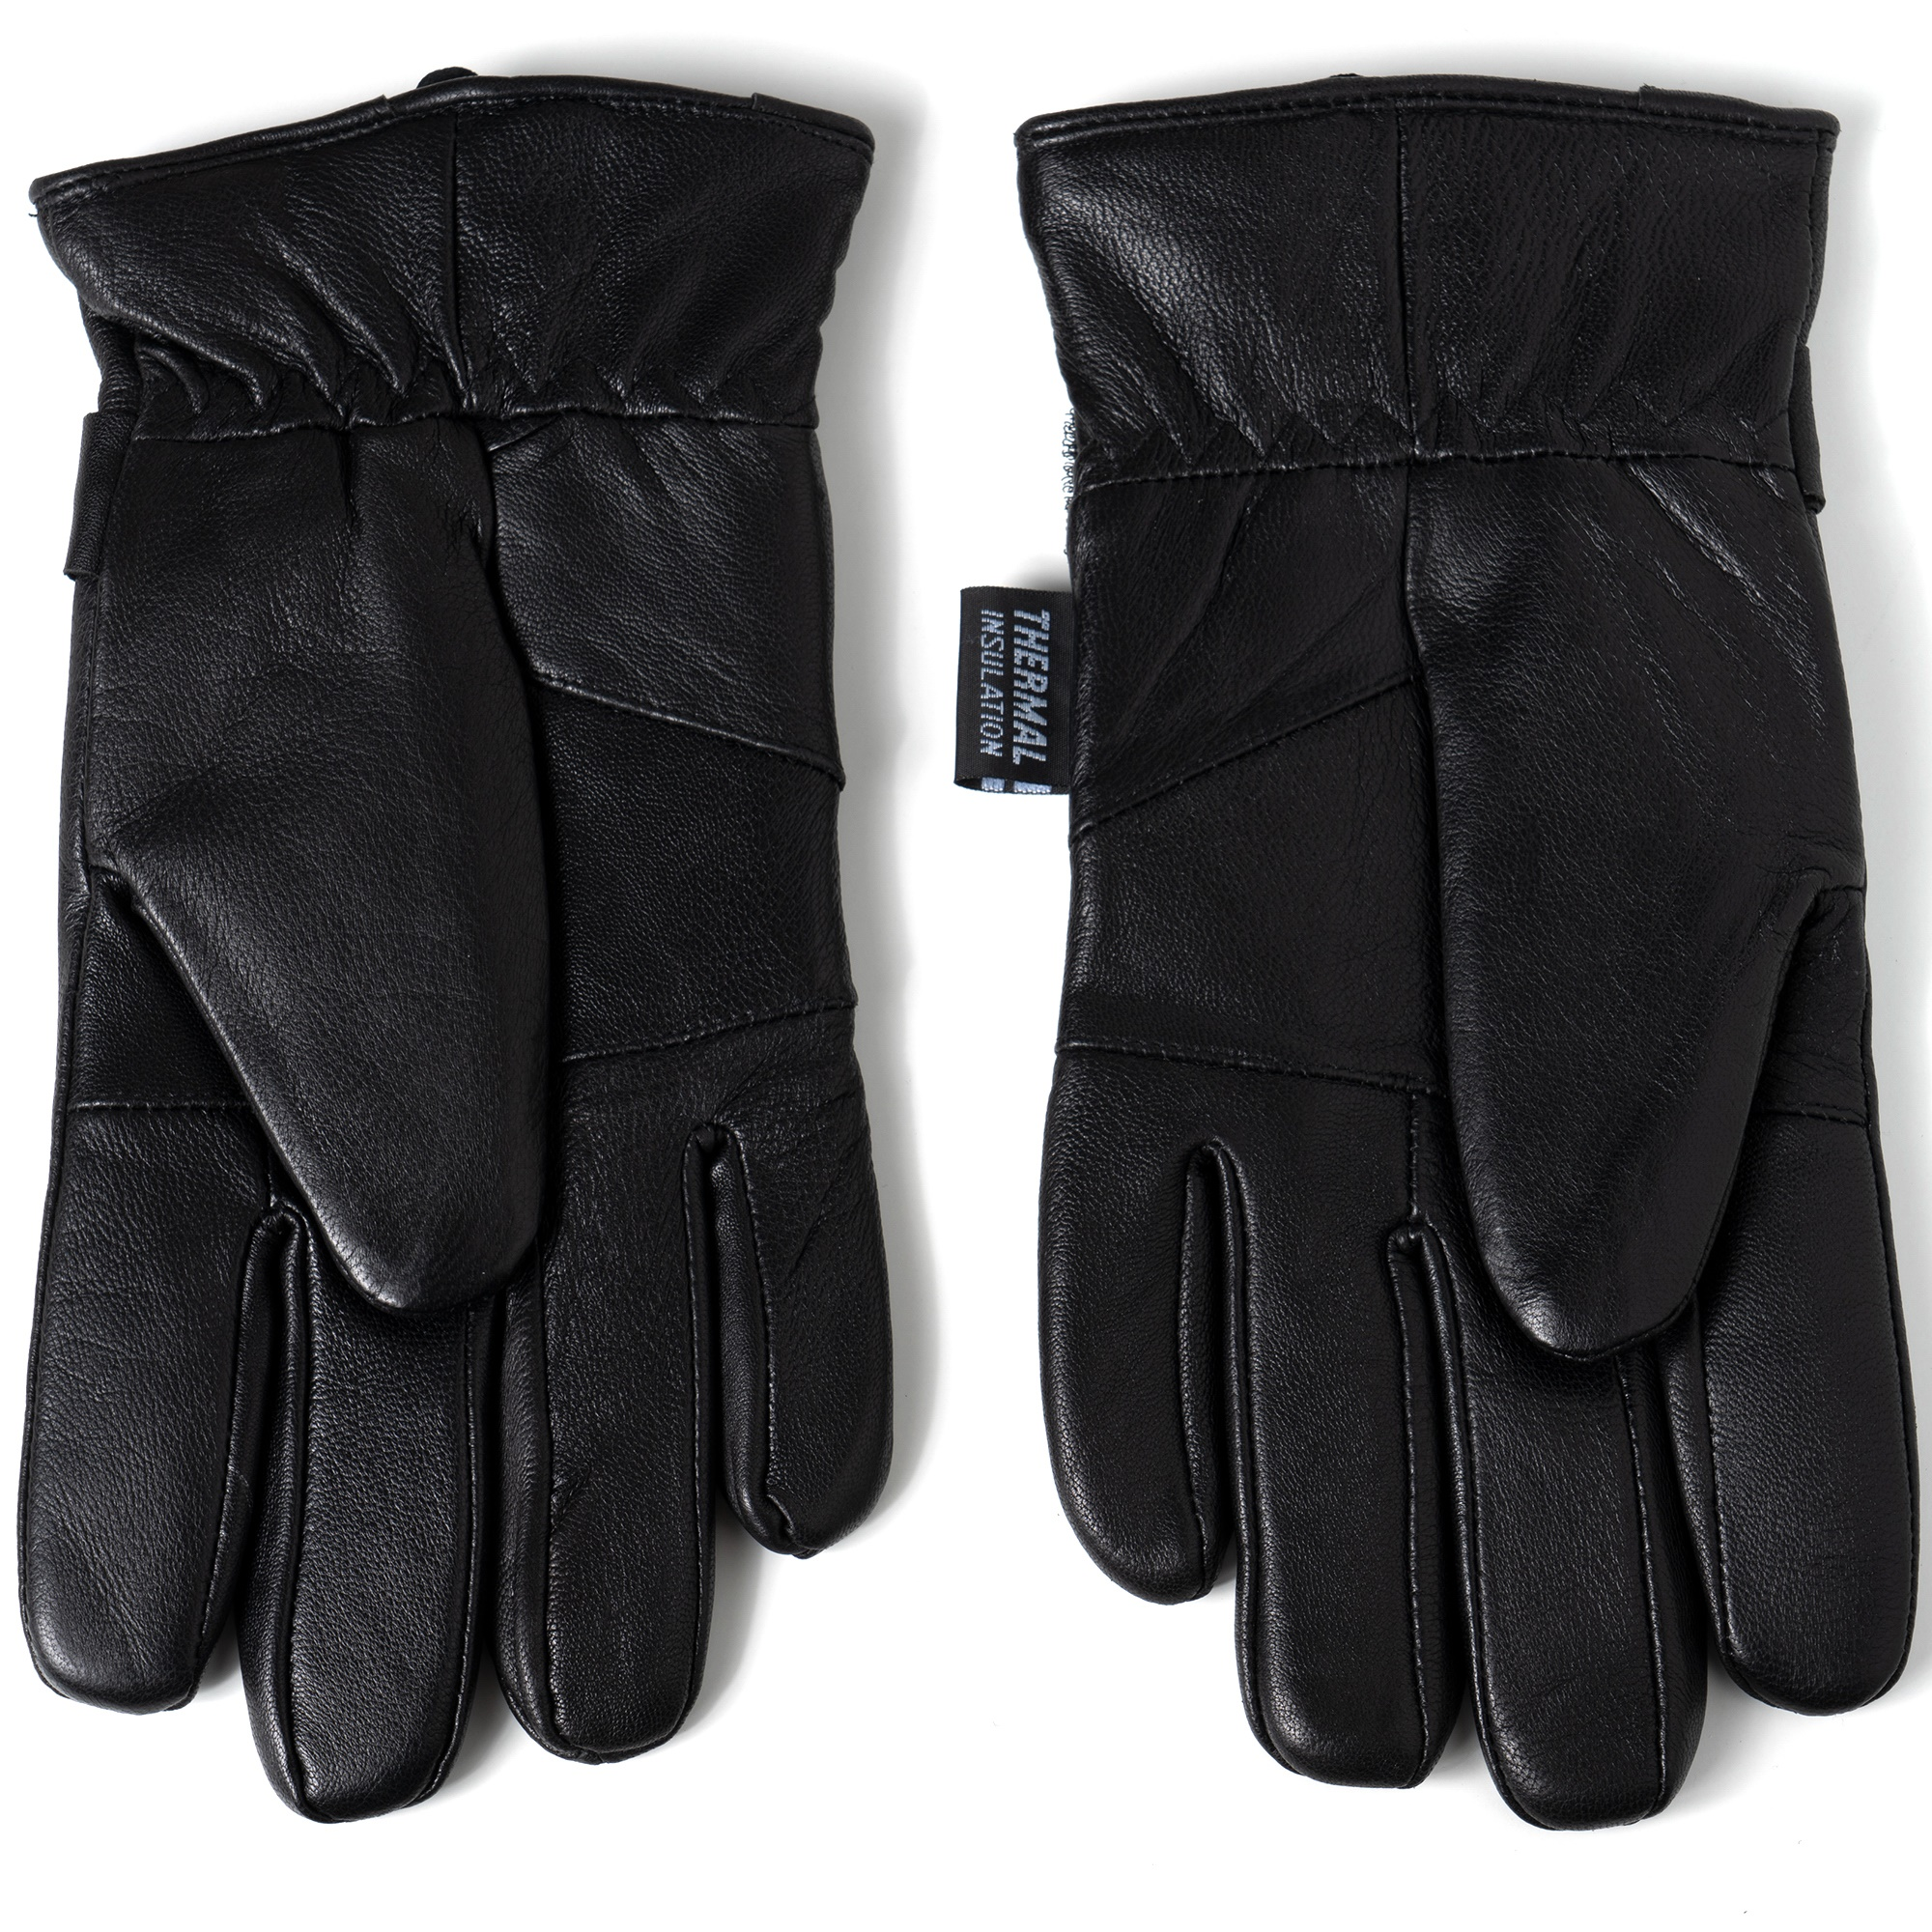 Alpine-Swiss-Mens-Gloves-Dressy-Genuine-Leather-Warm-Thermal-Lined-Wrist-Strap thumbnail 18